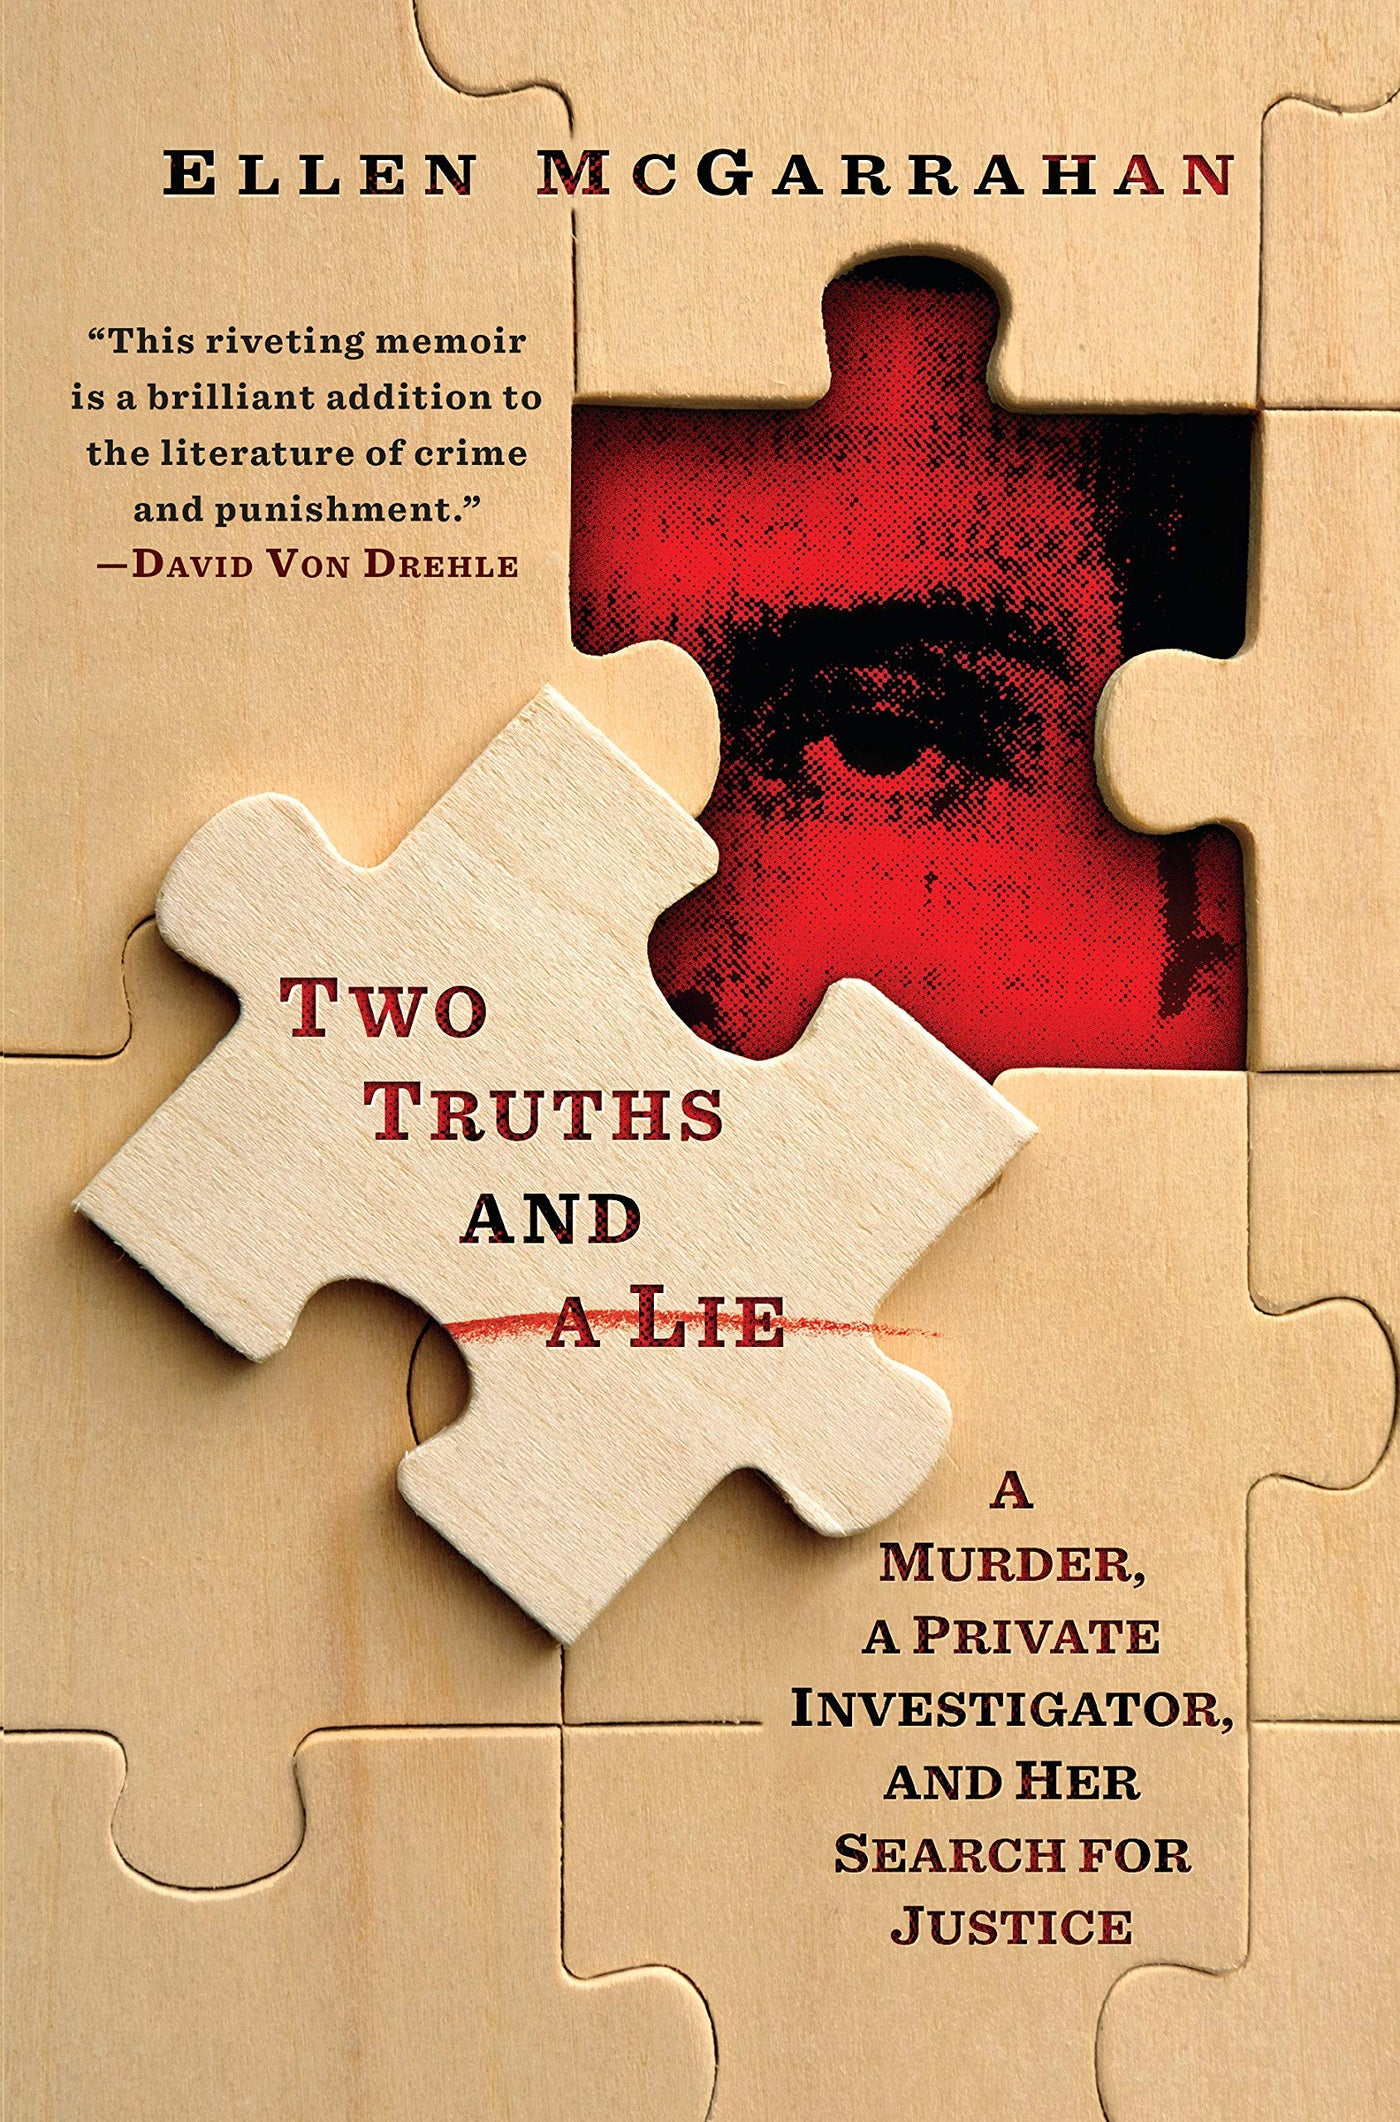 Two Truths and A Lie by Ellen McGarrahan